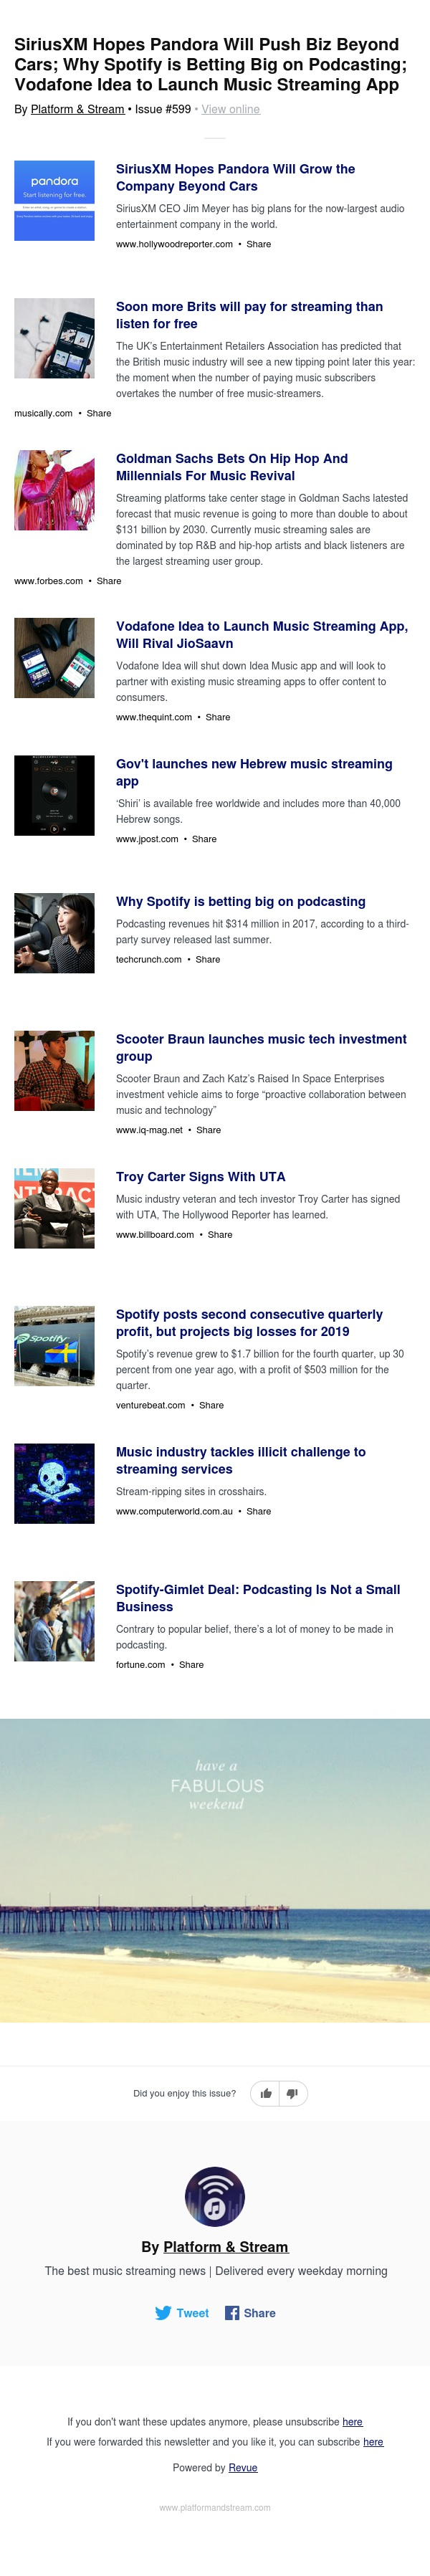 SiriusXM Hopes Pandora Will Push Biz Beyond Cars; Why Spotify is Betting Big on Podcasting; Vodafone Idea to Launch Music Streaming App